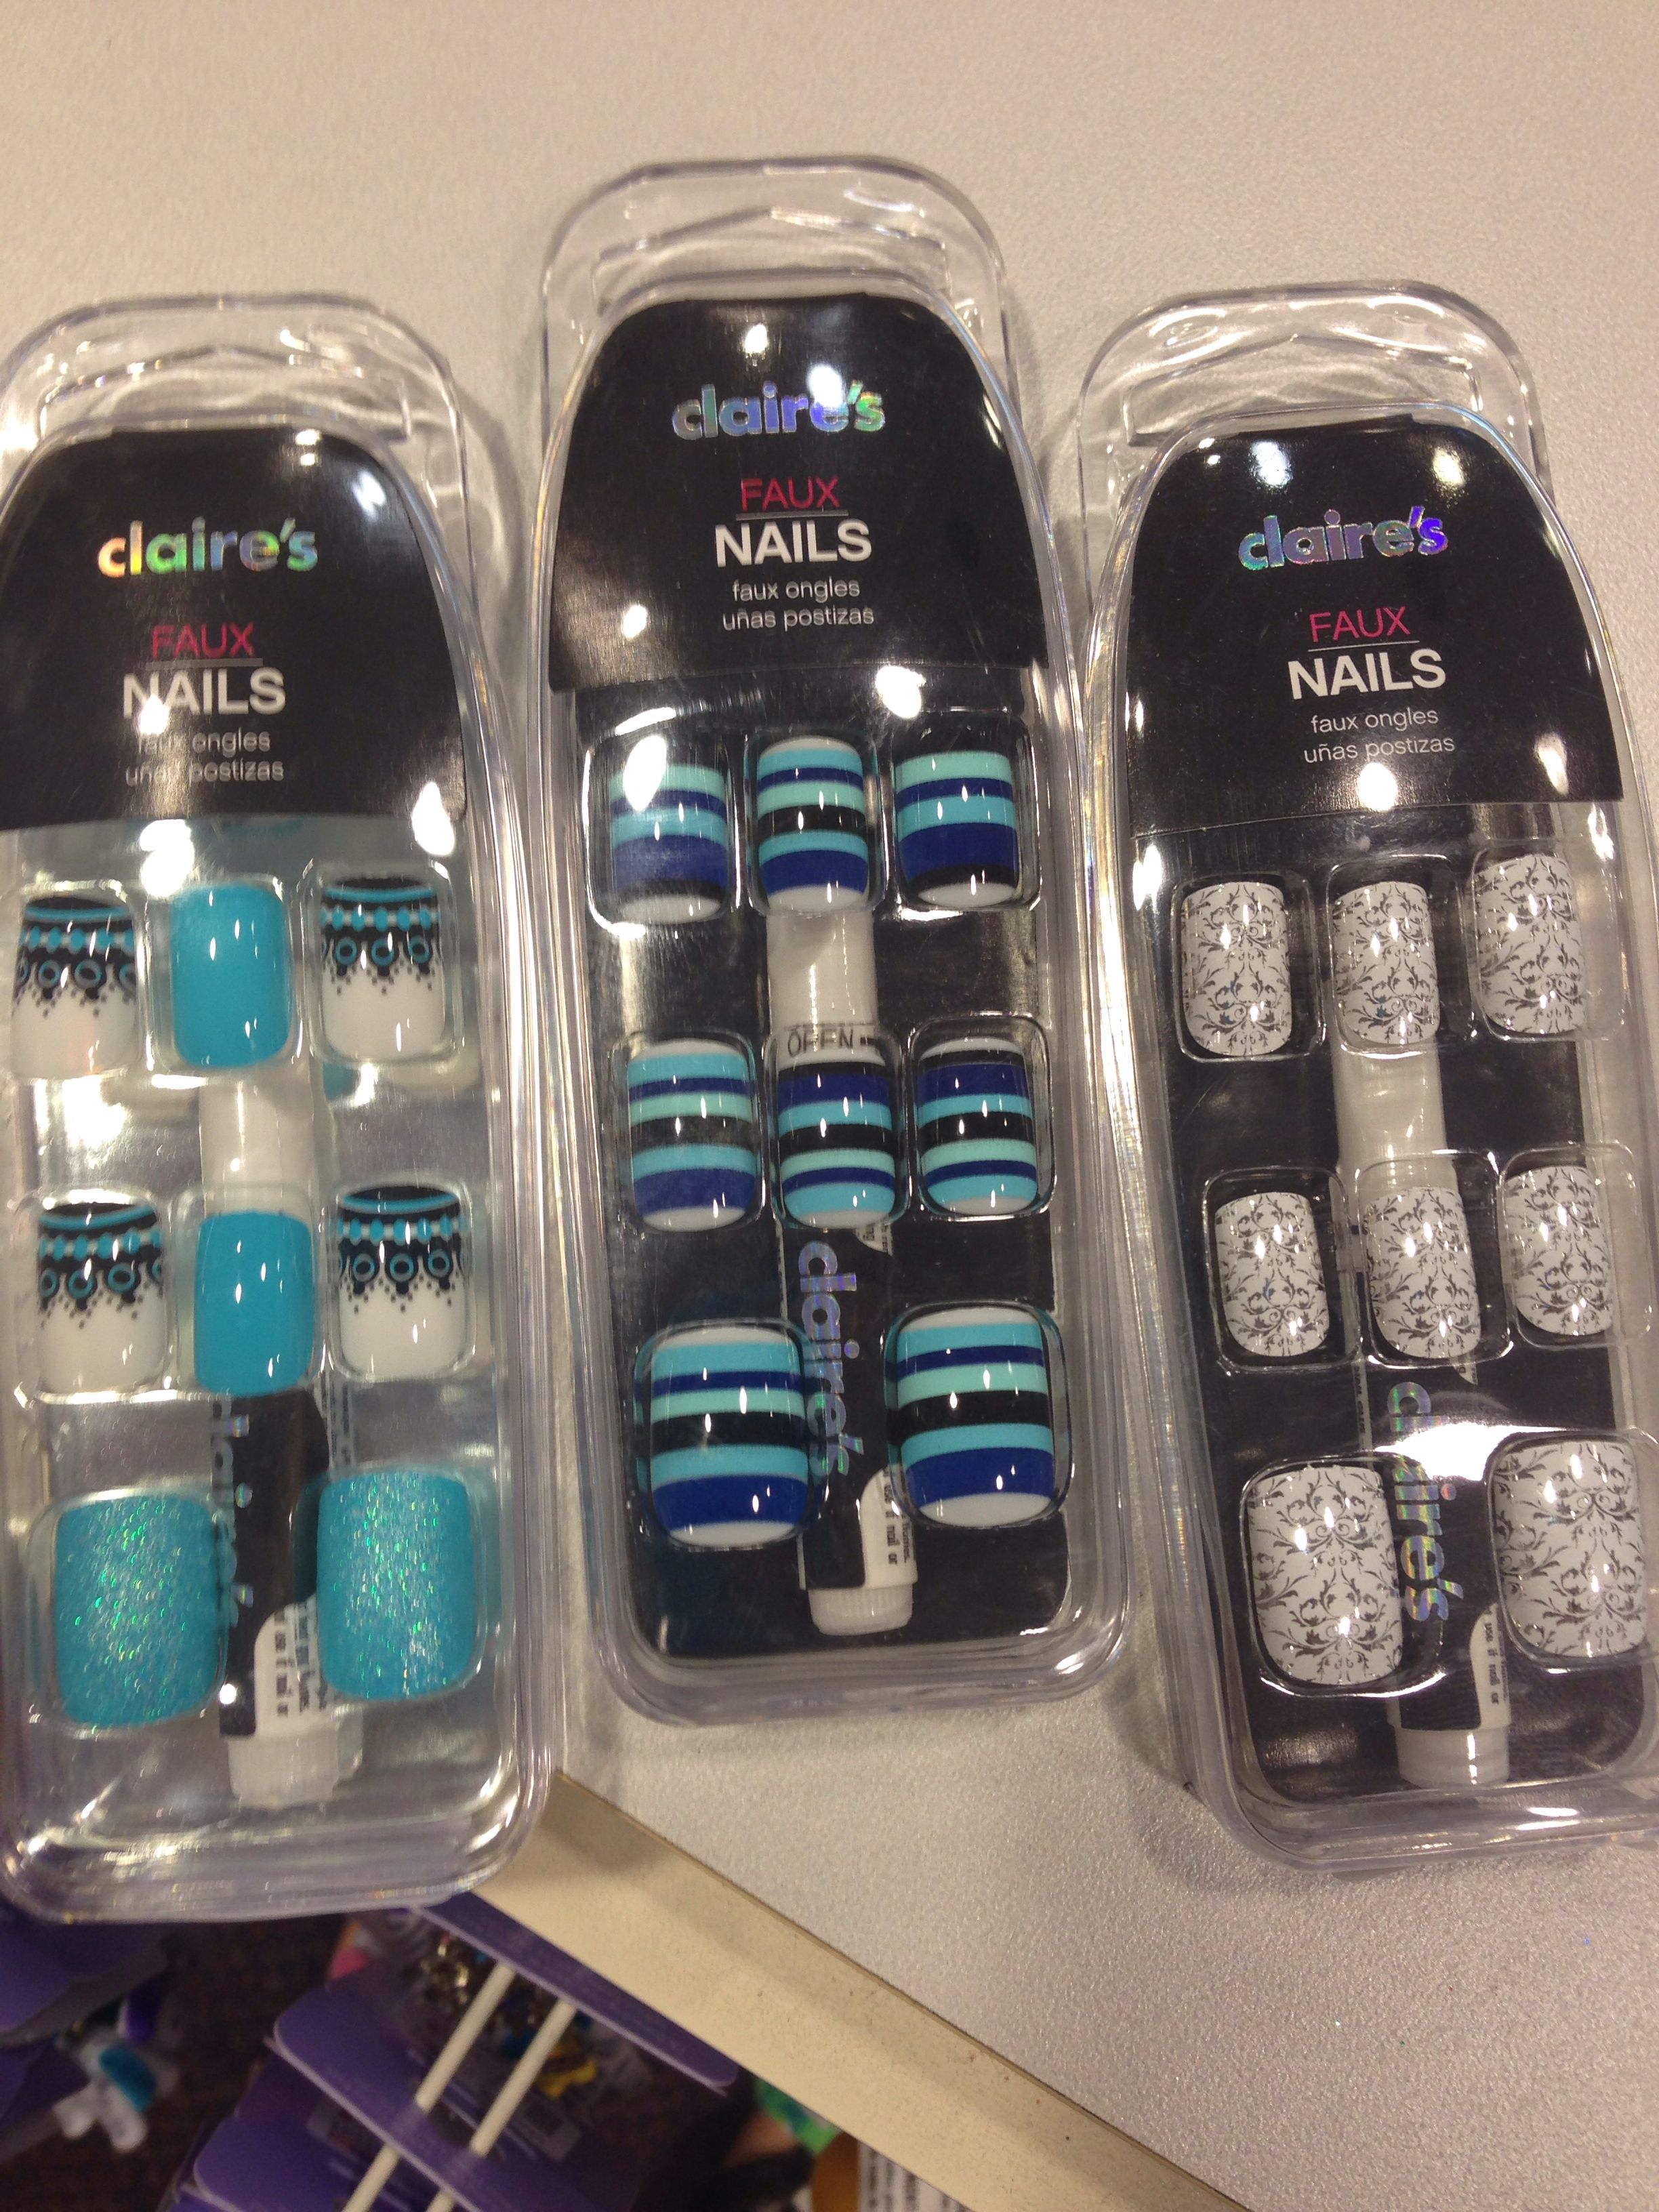 Found These Awesome Faux Nails At Clairs Claires Fake